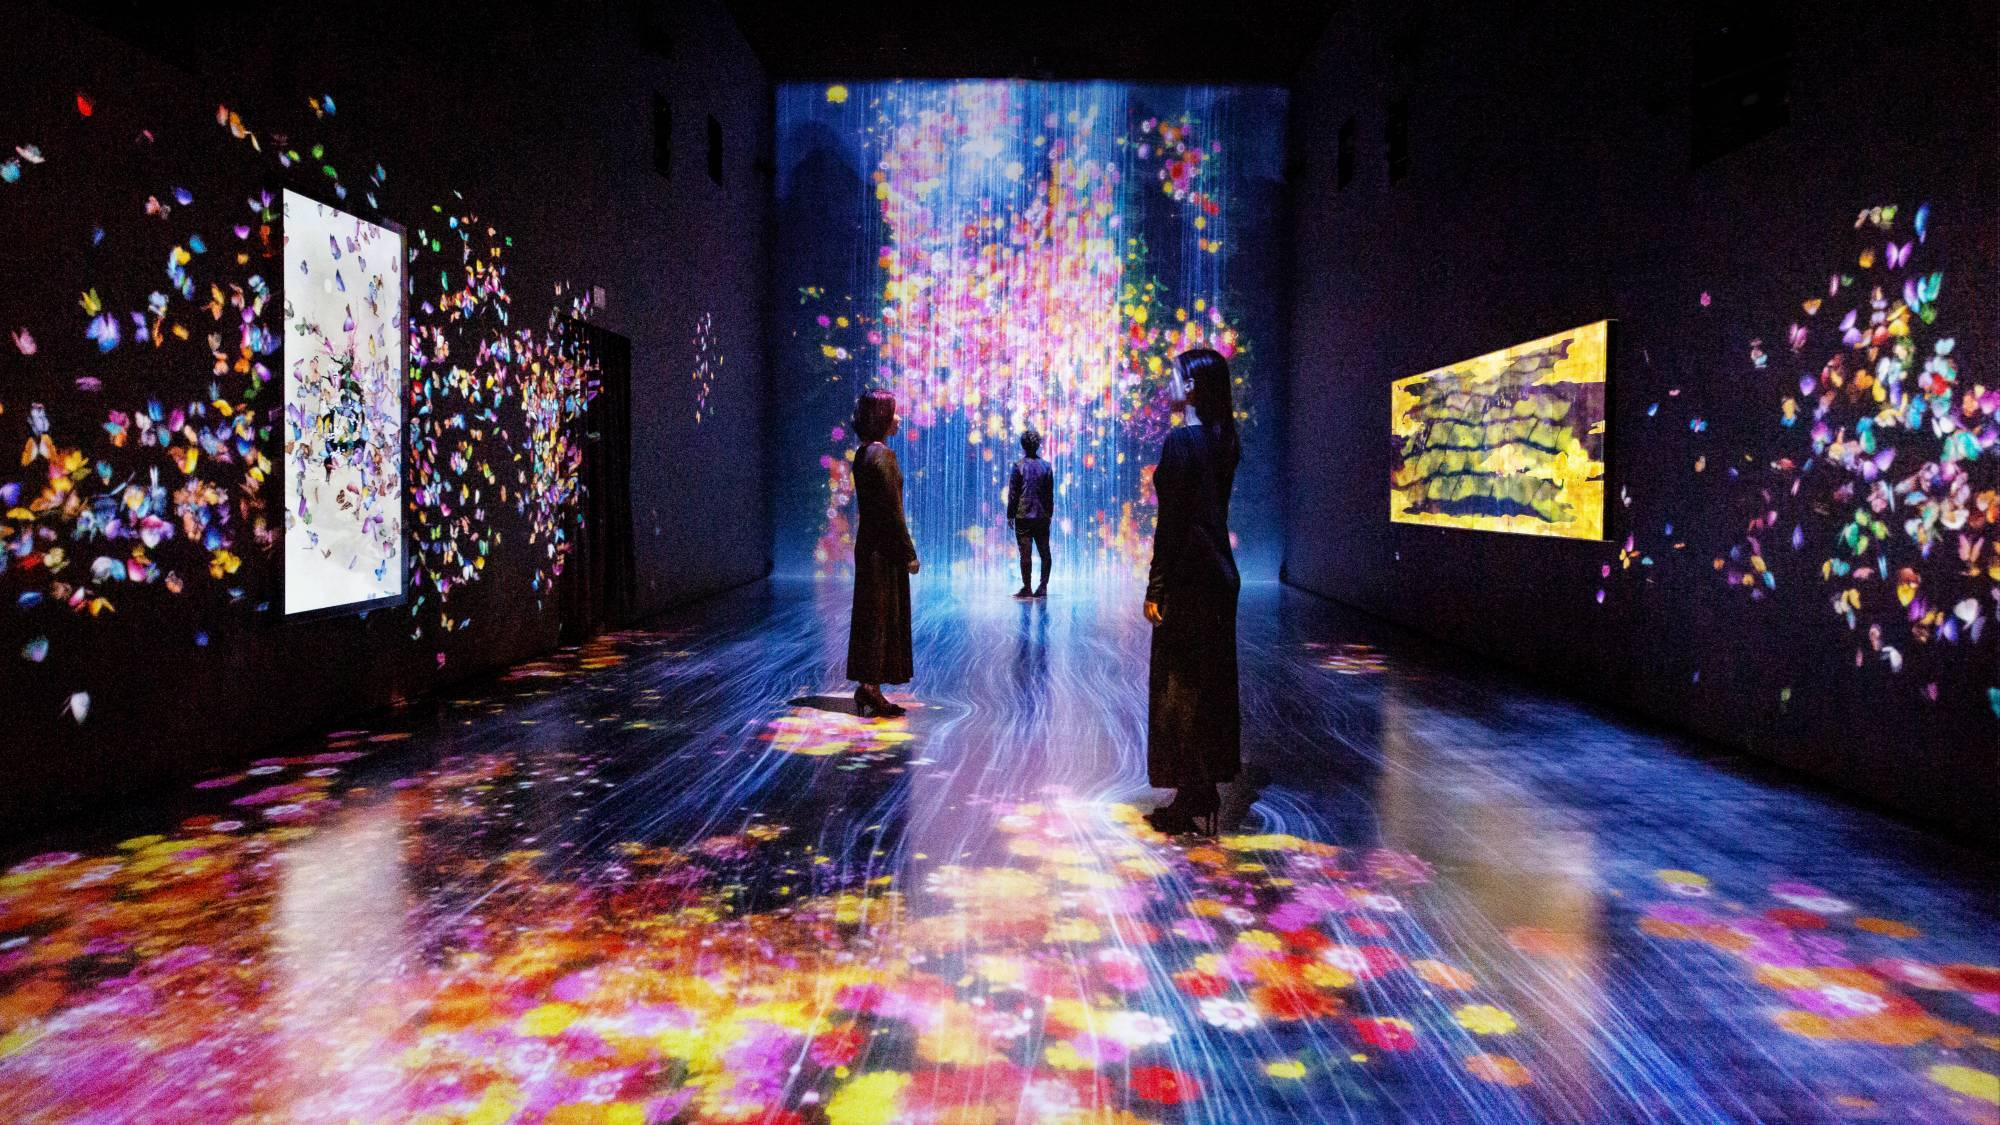 #futuretogether | teamLab / チームラボ